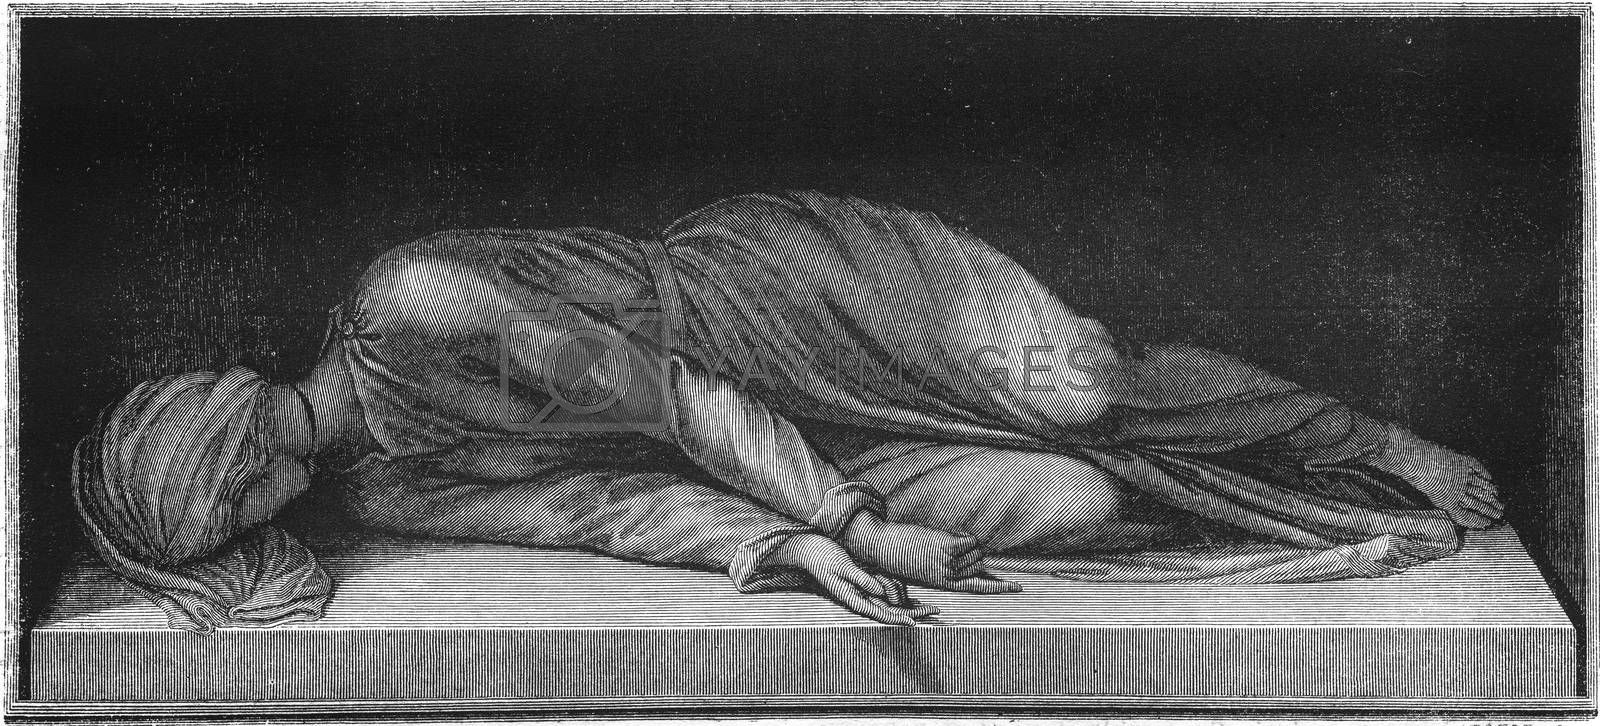 Statue of Saint Cecilia, by Etienne Modern, in the church of Siante in Trastevere Cecilia in Rome, vintage engraved illustration. Magasin Pittoresque 1847.